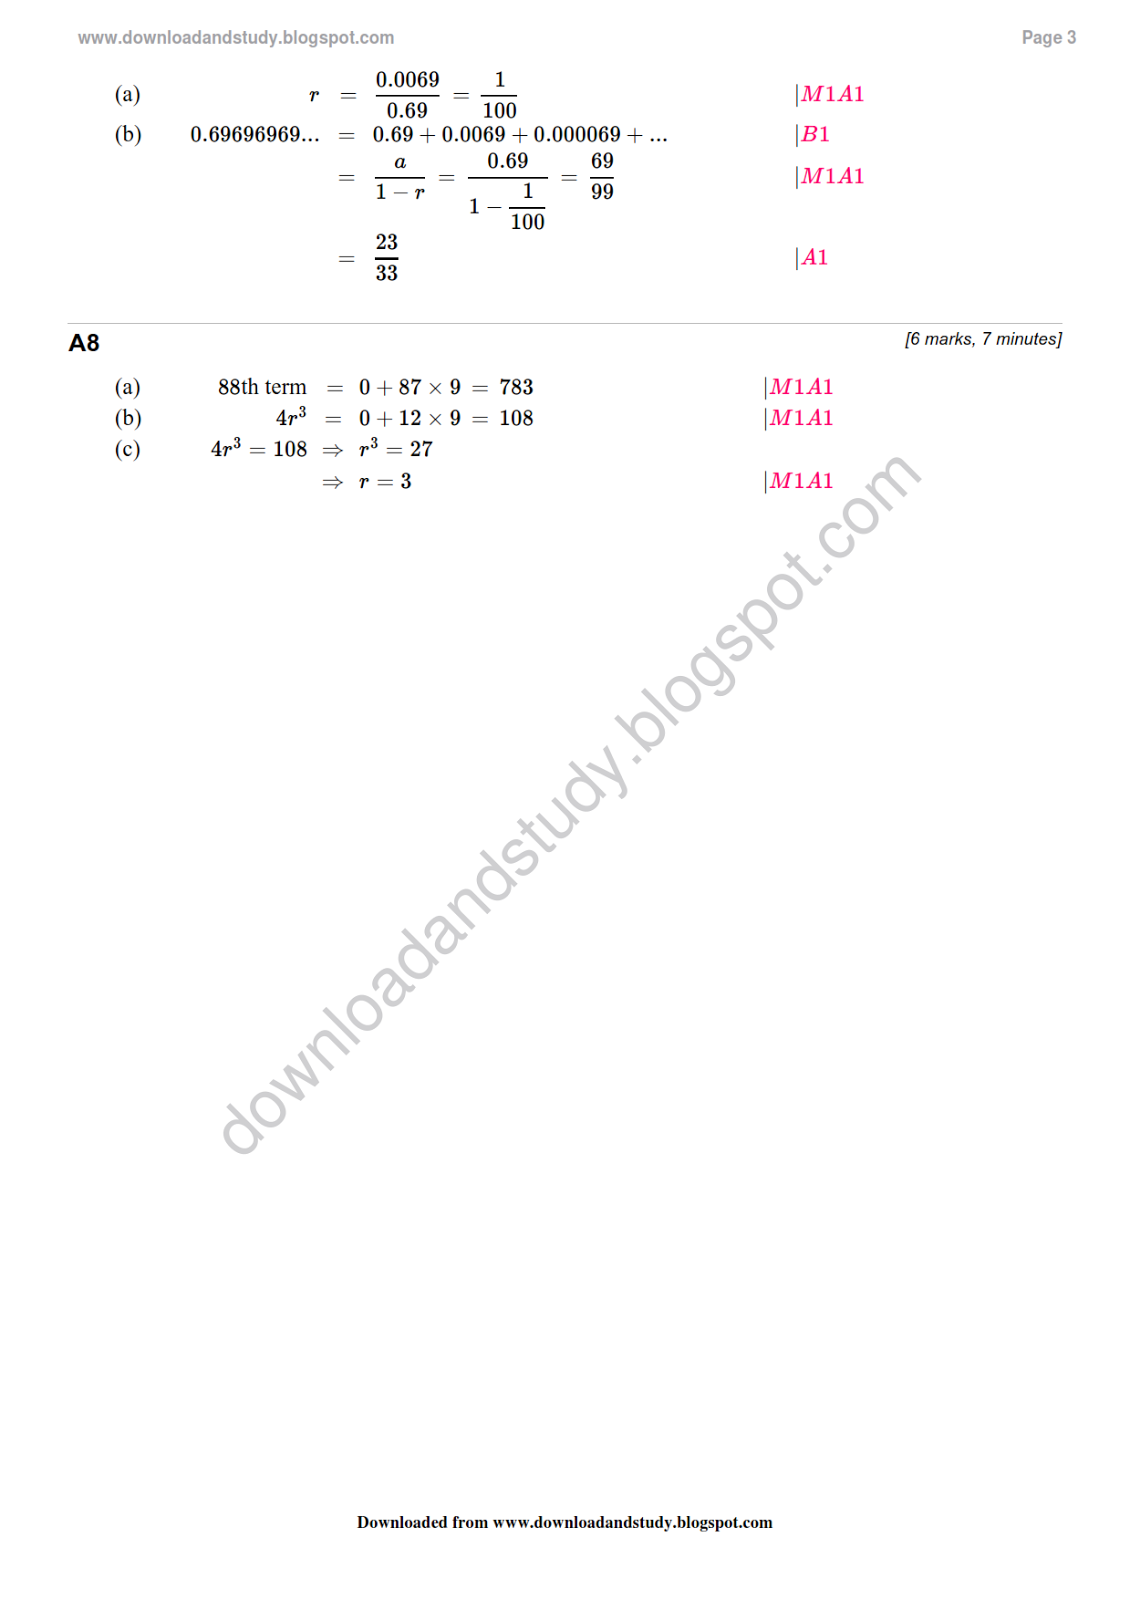 Download Amp Study Solution To As Maths Geometric Sequence Revision Test Worksheet